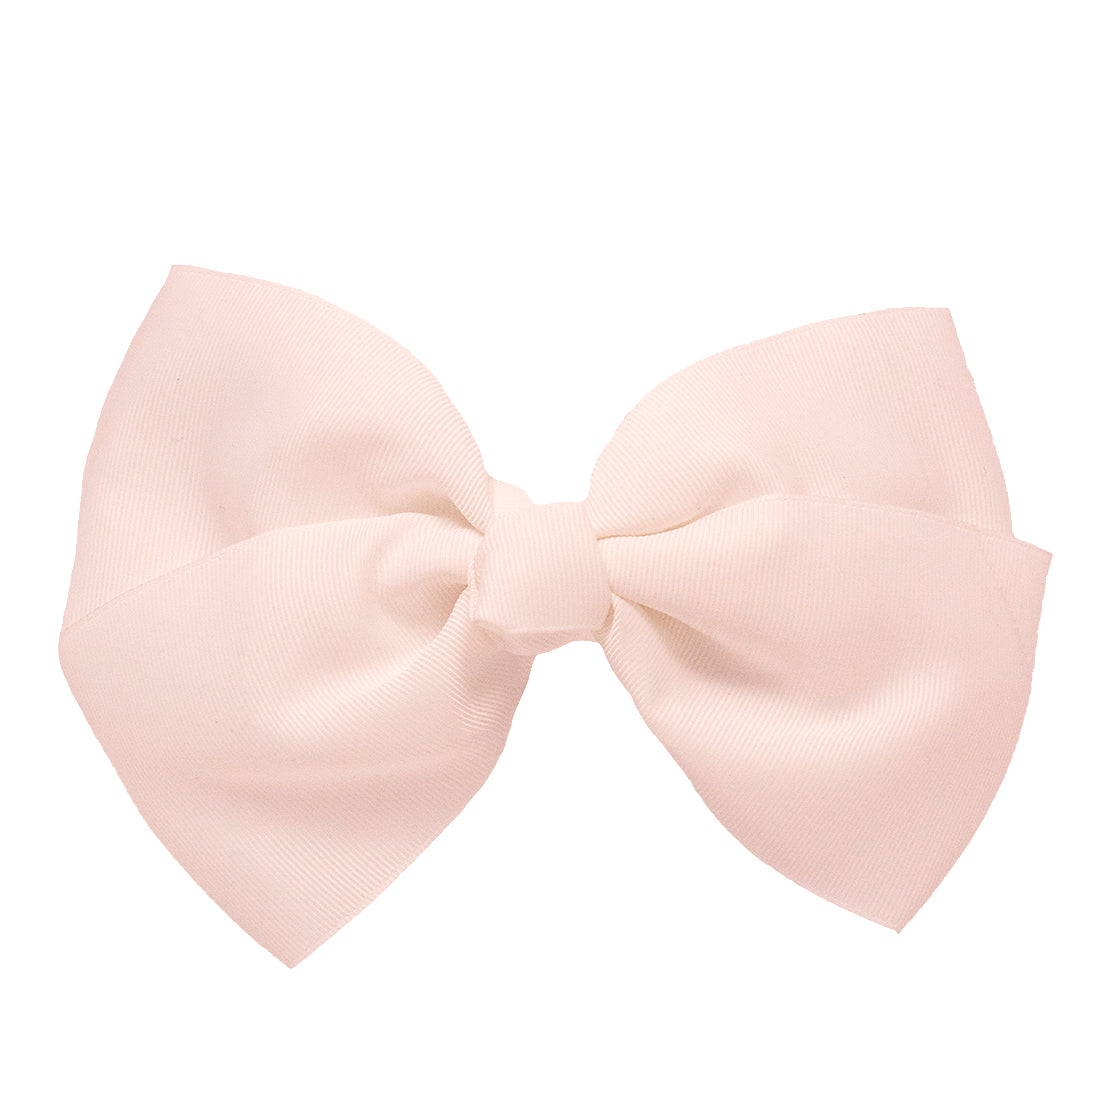 Mia Spirit Extra Large Grosgrain Bow Barrette - white color - designed by #MiaKaminski of Mia Beauty